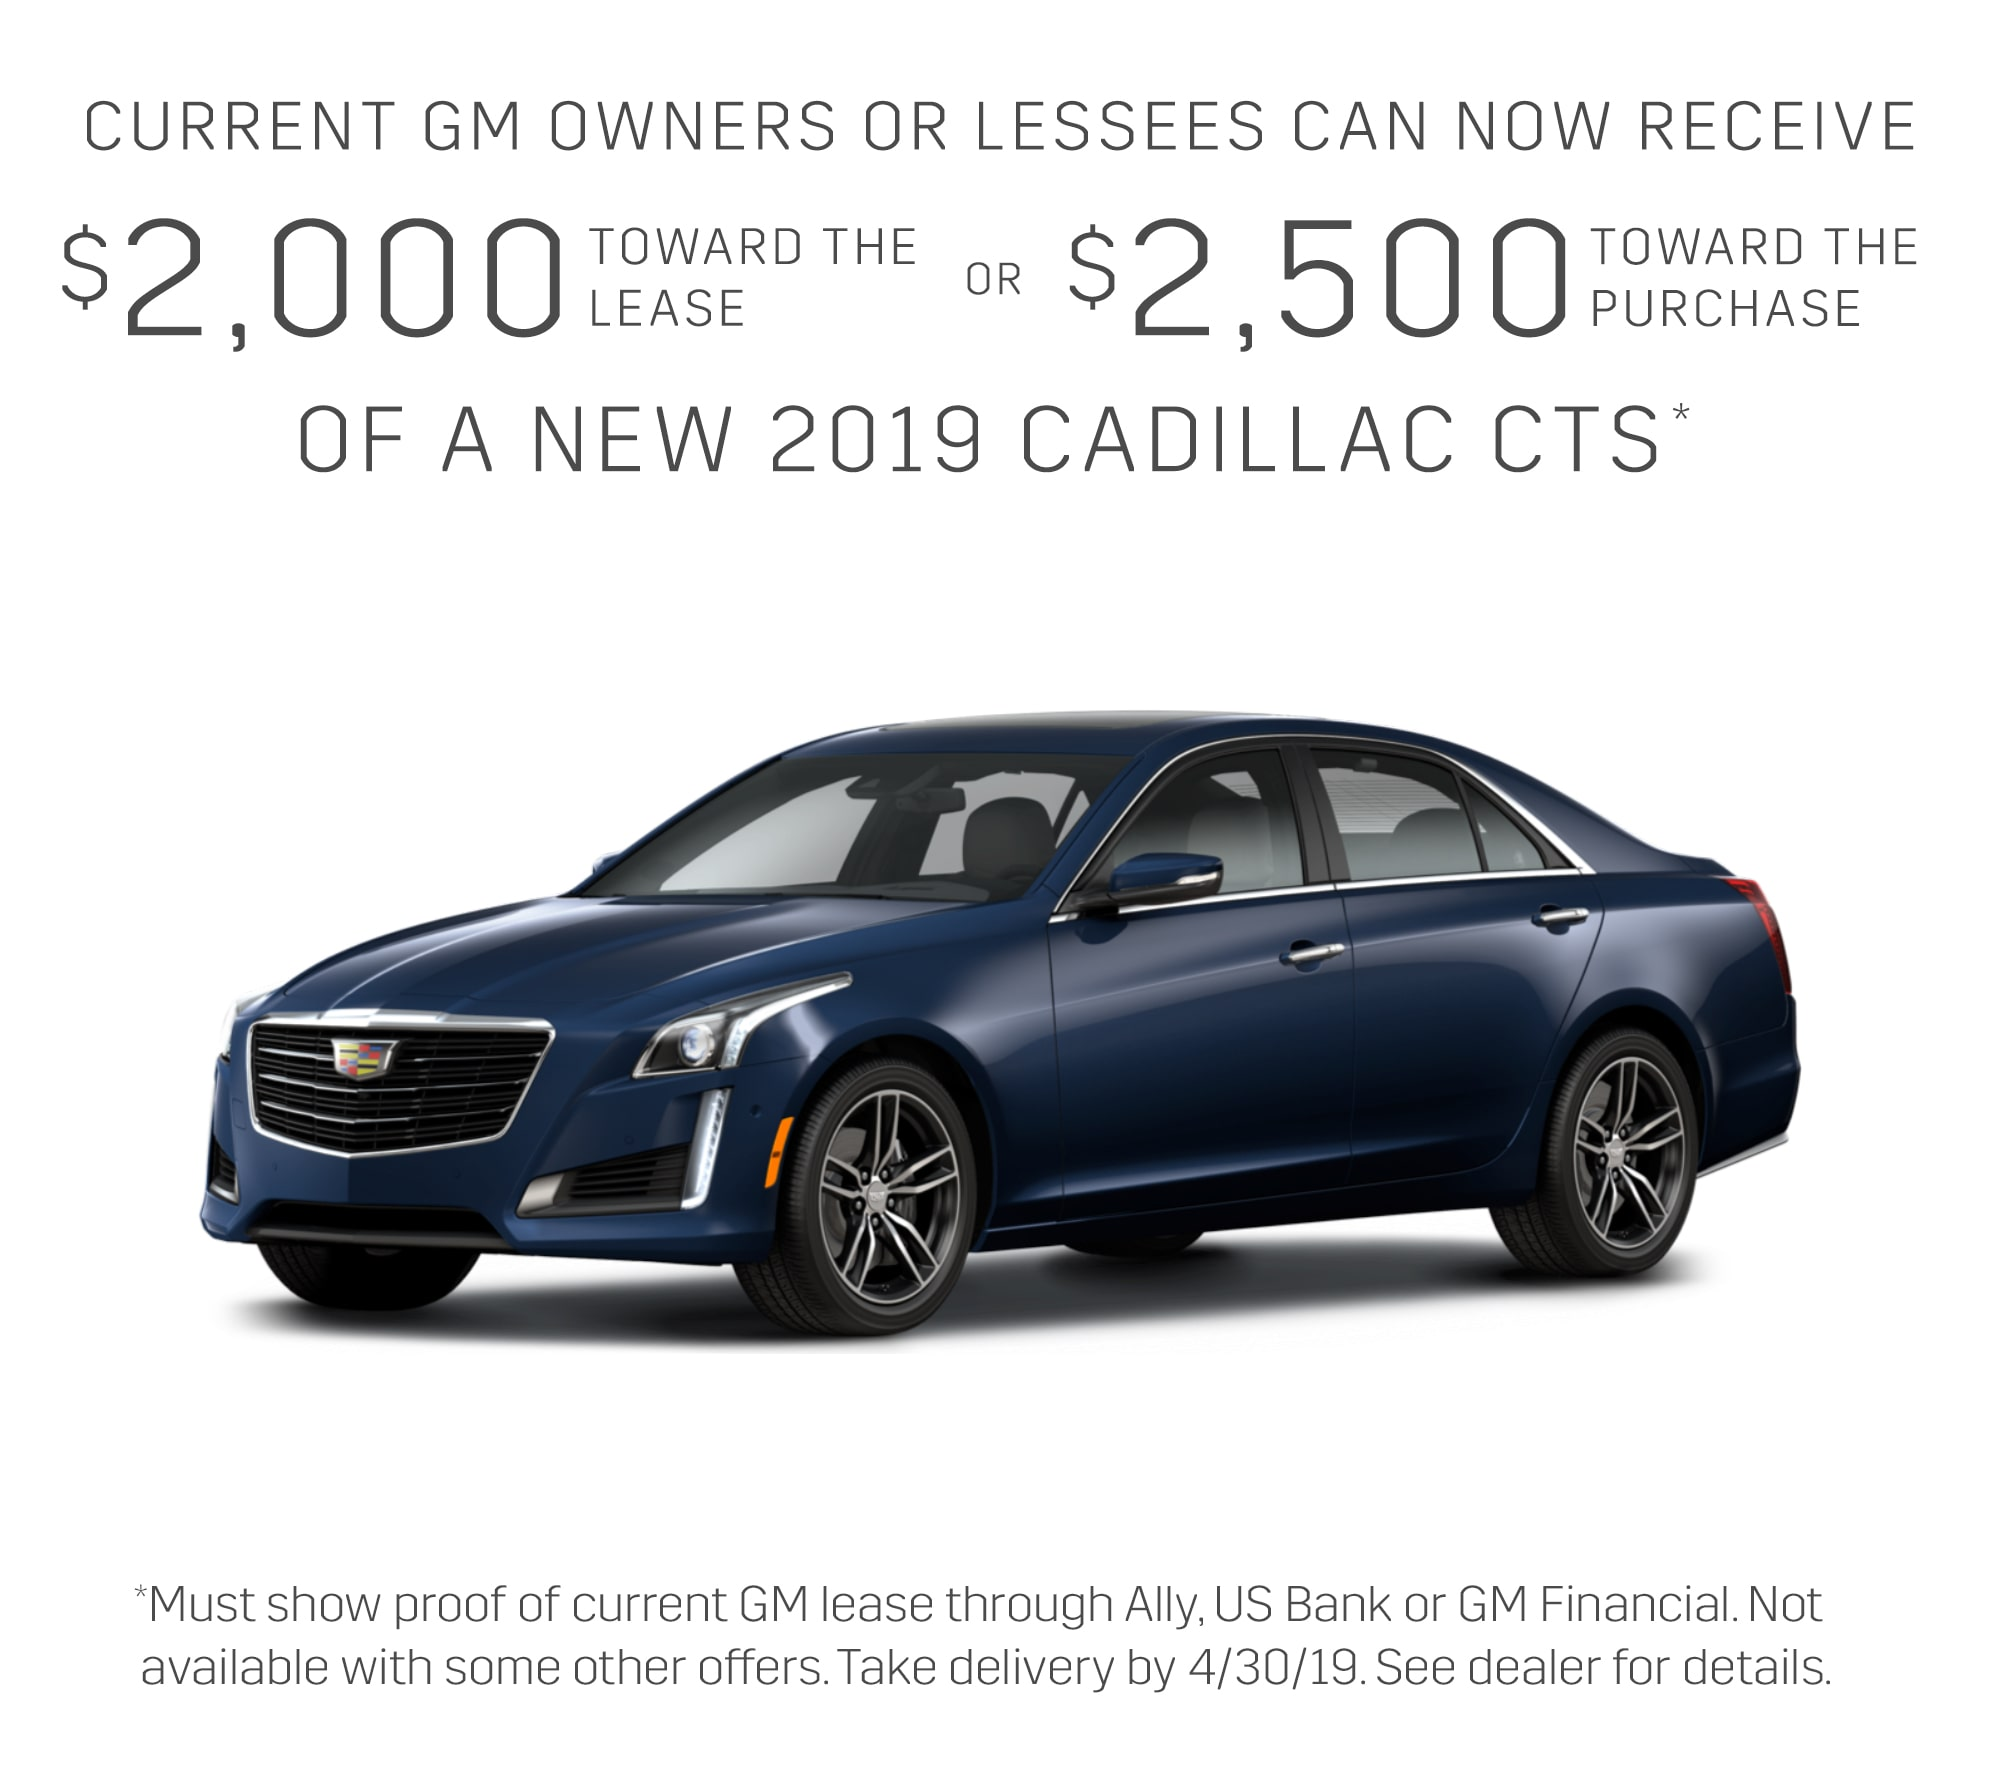 Cts Sedan Cadillac: Current Offers & Special Deals